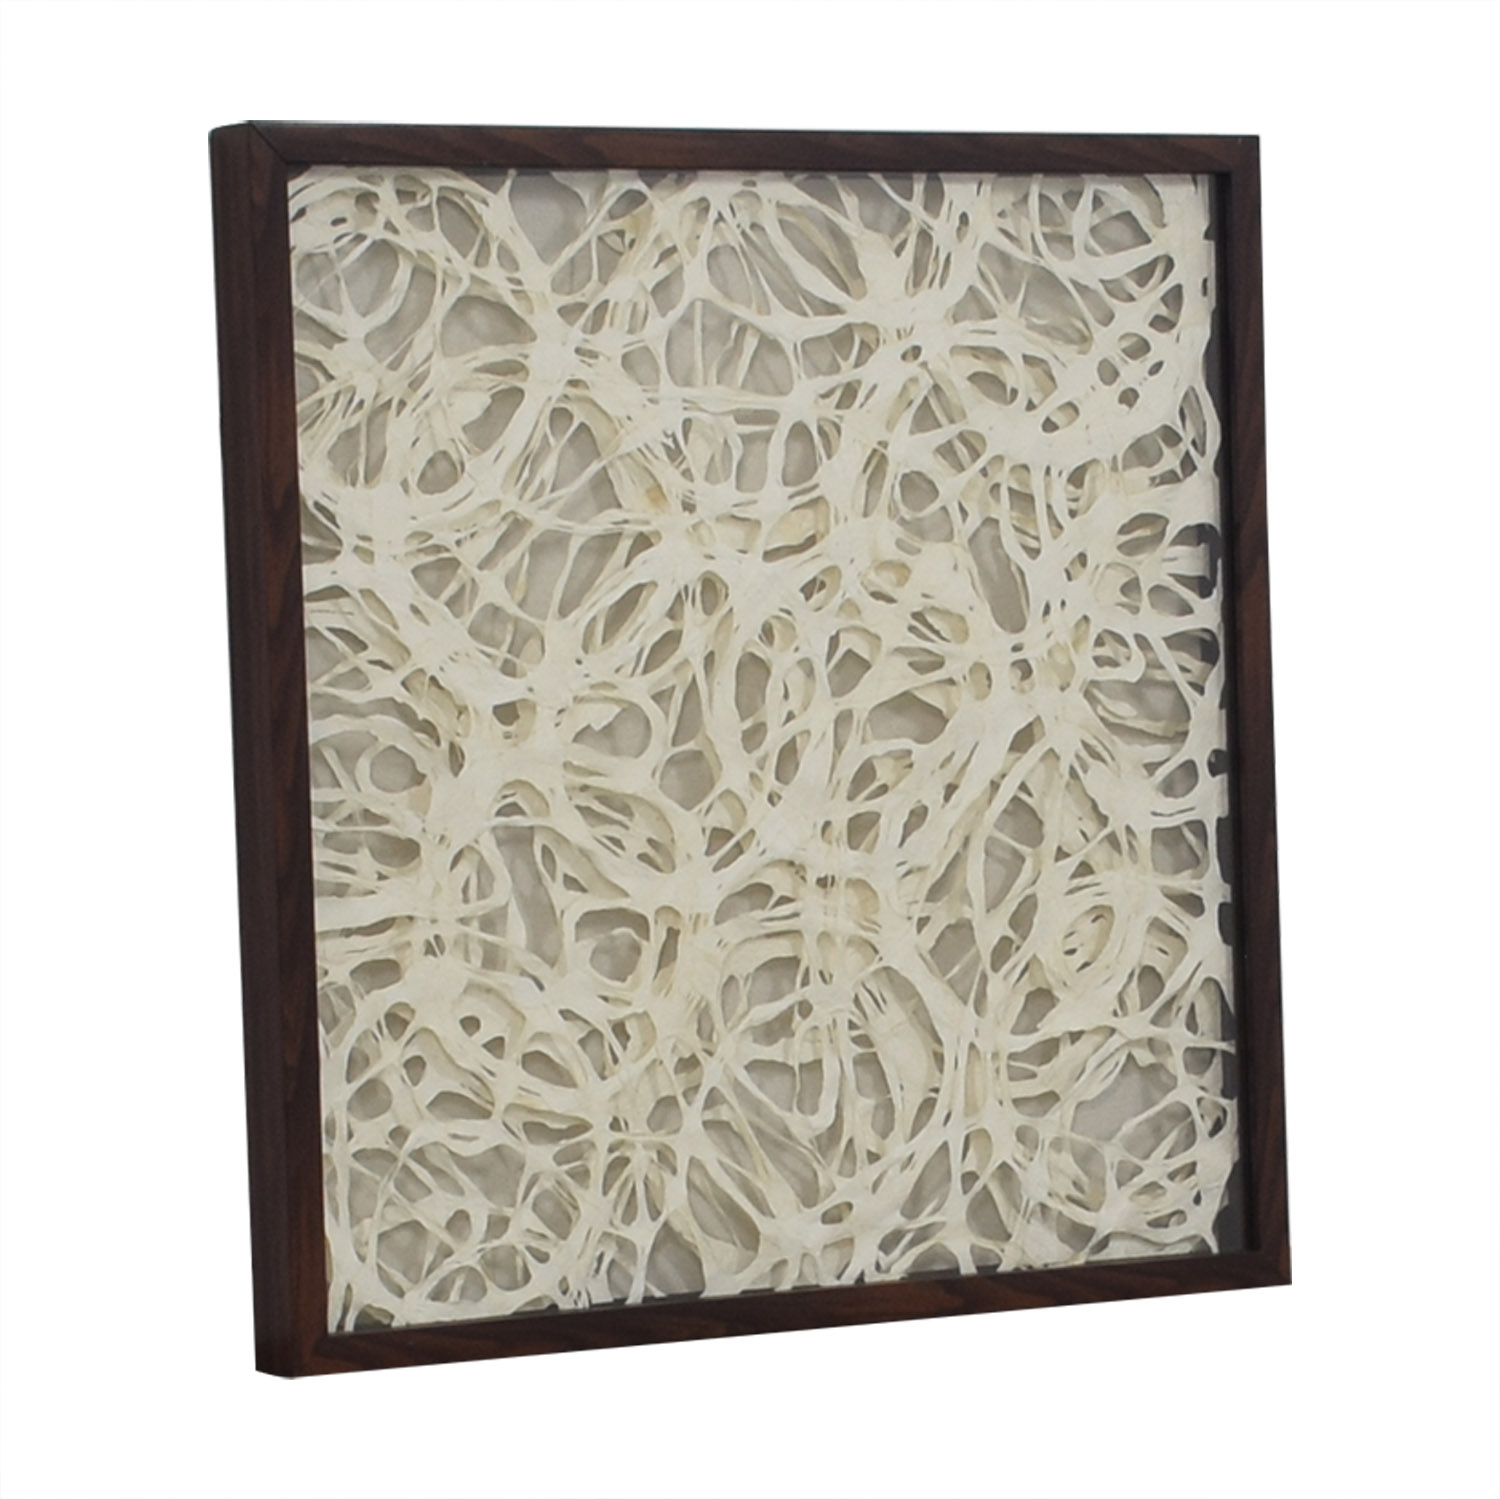 buy Overlapping Strings Wood Framed Art  Wall Art